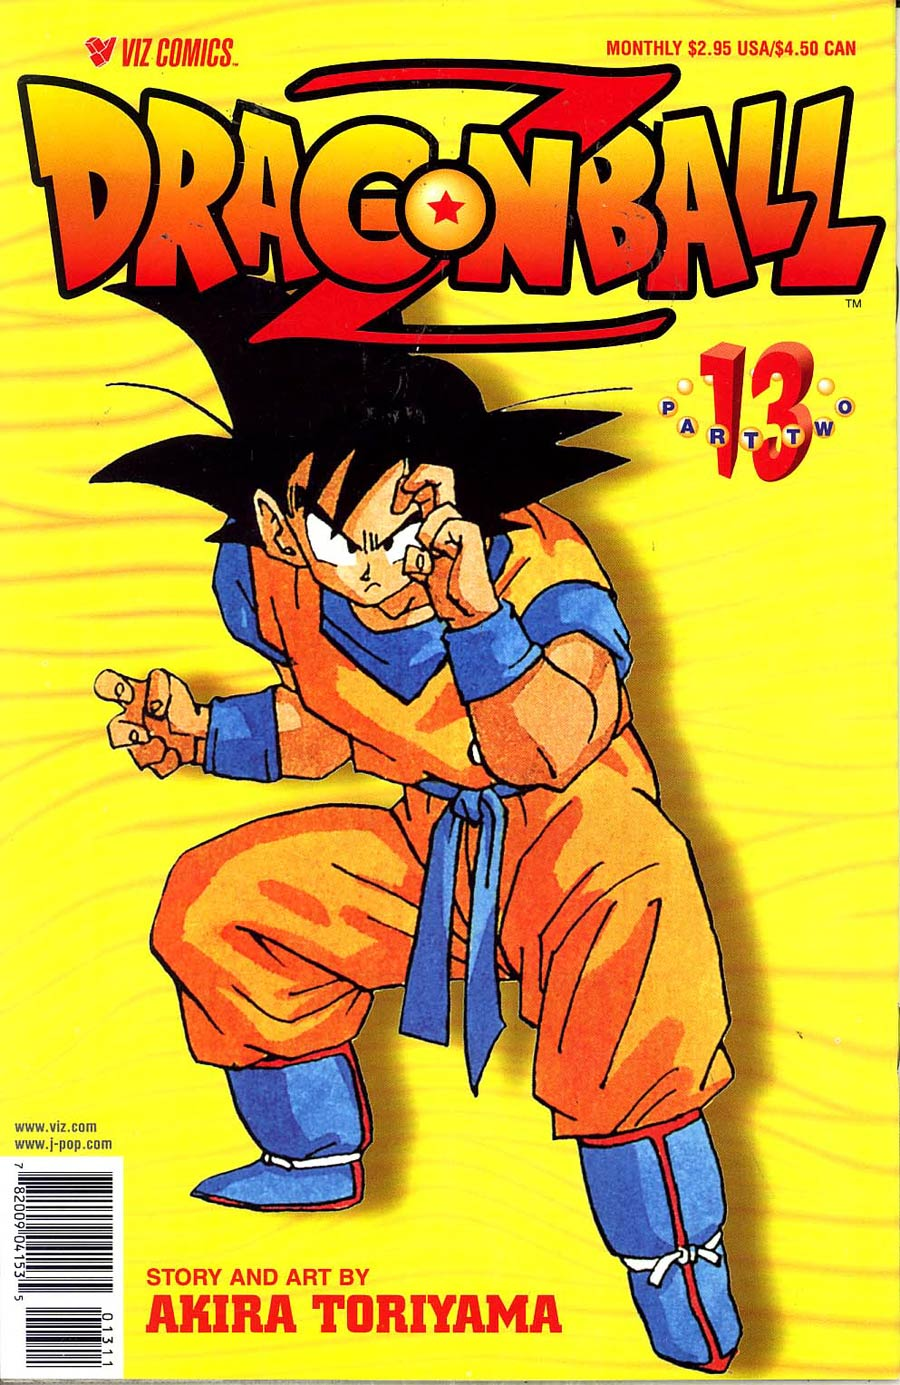 Dragon Ball Z Part 2 #13